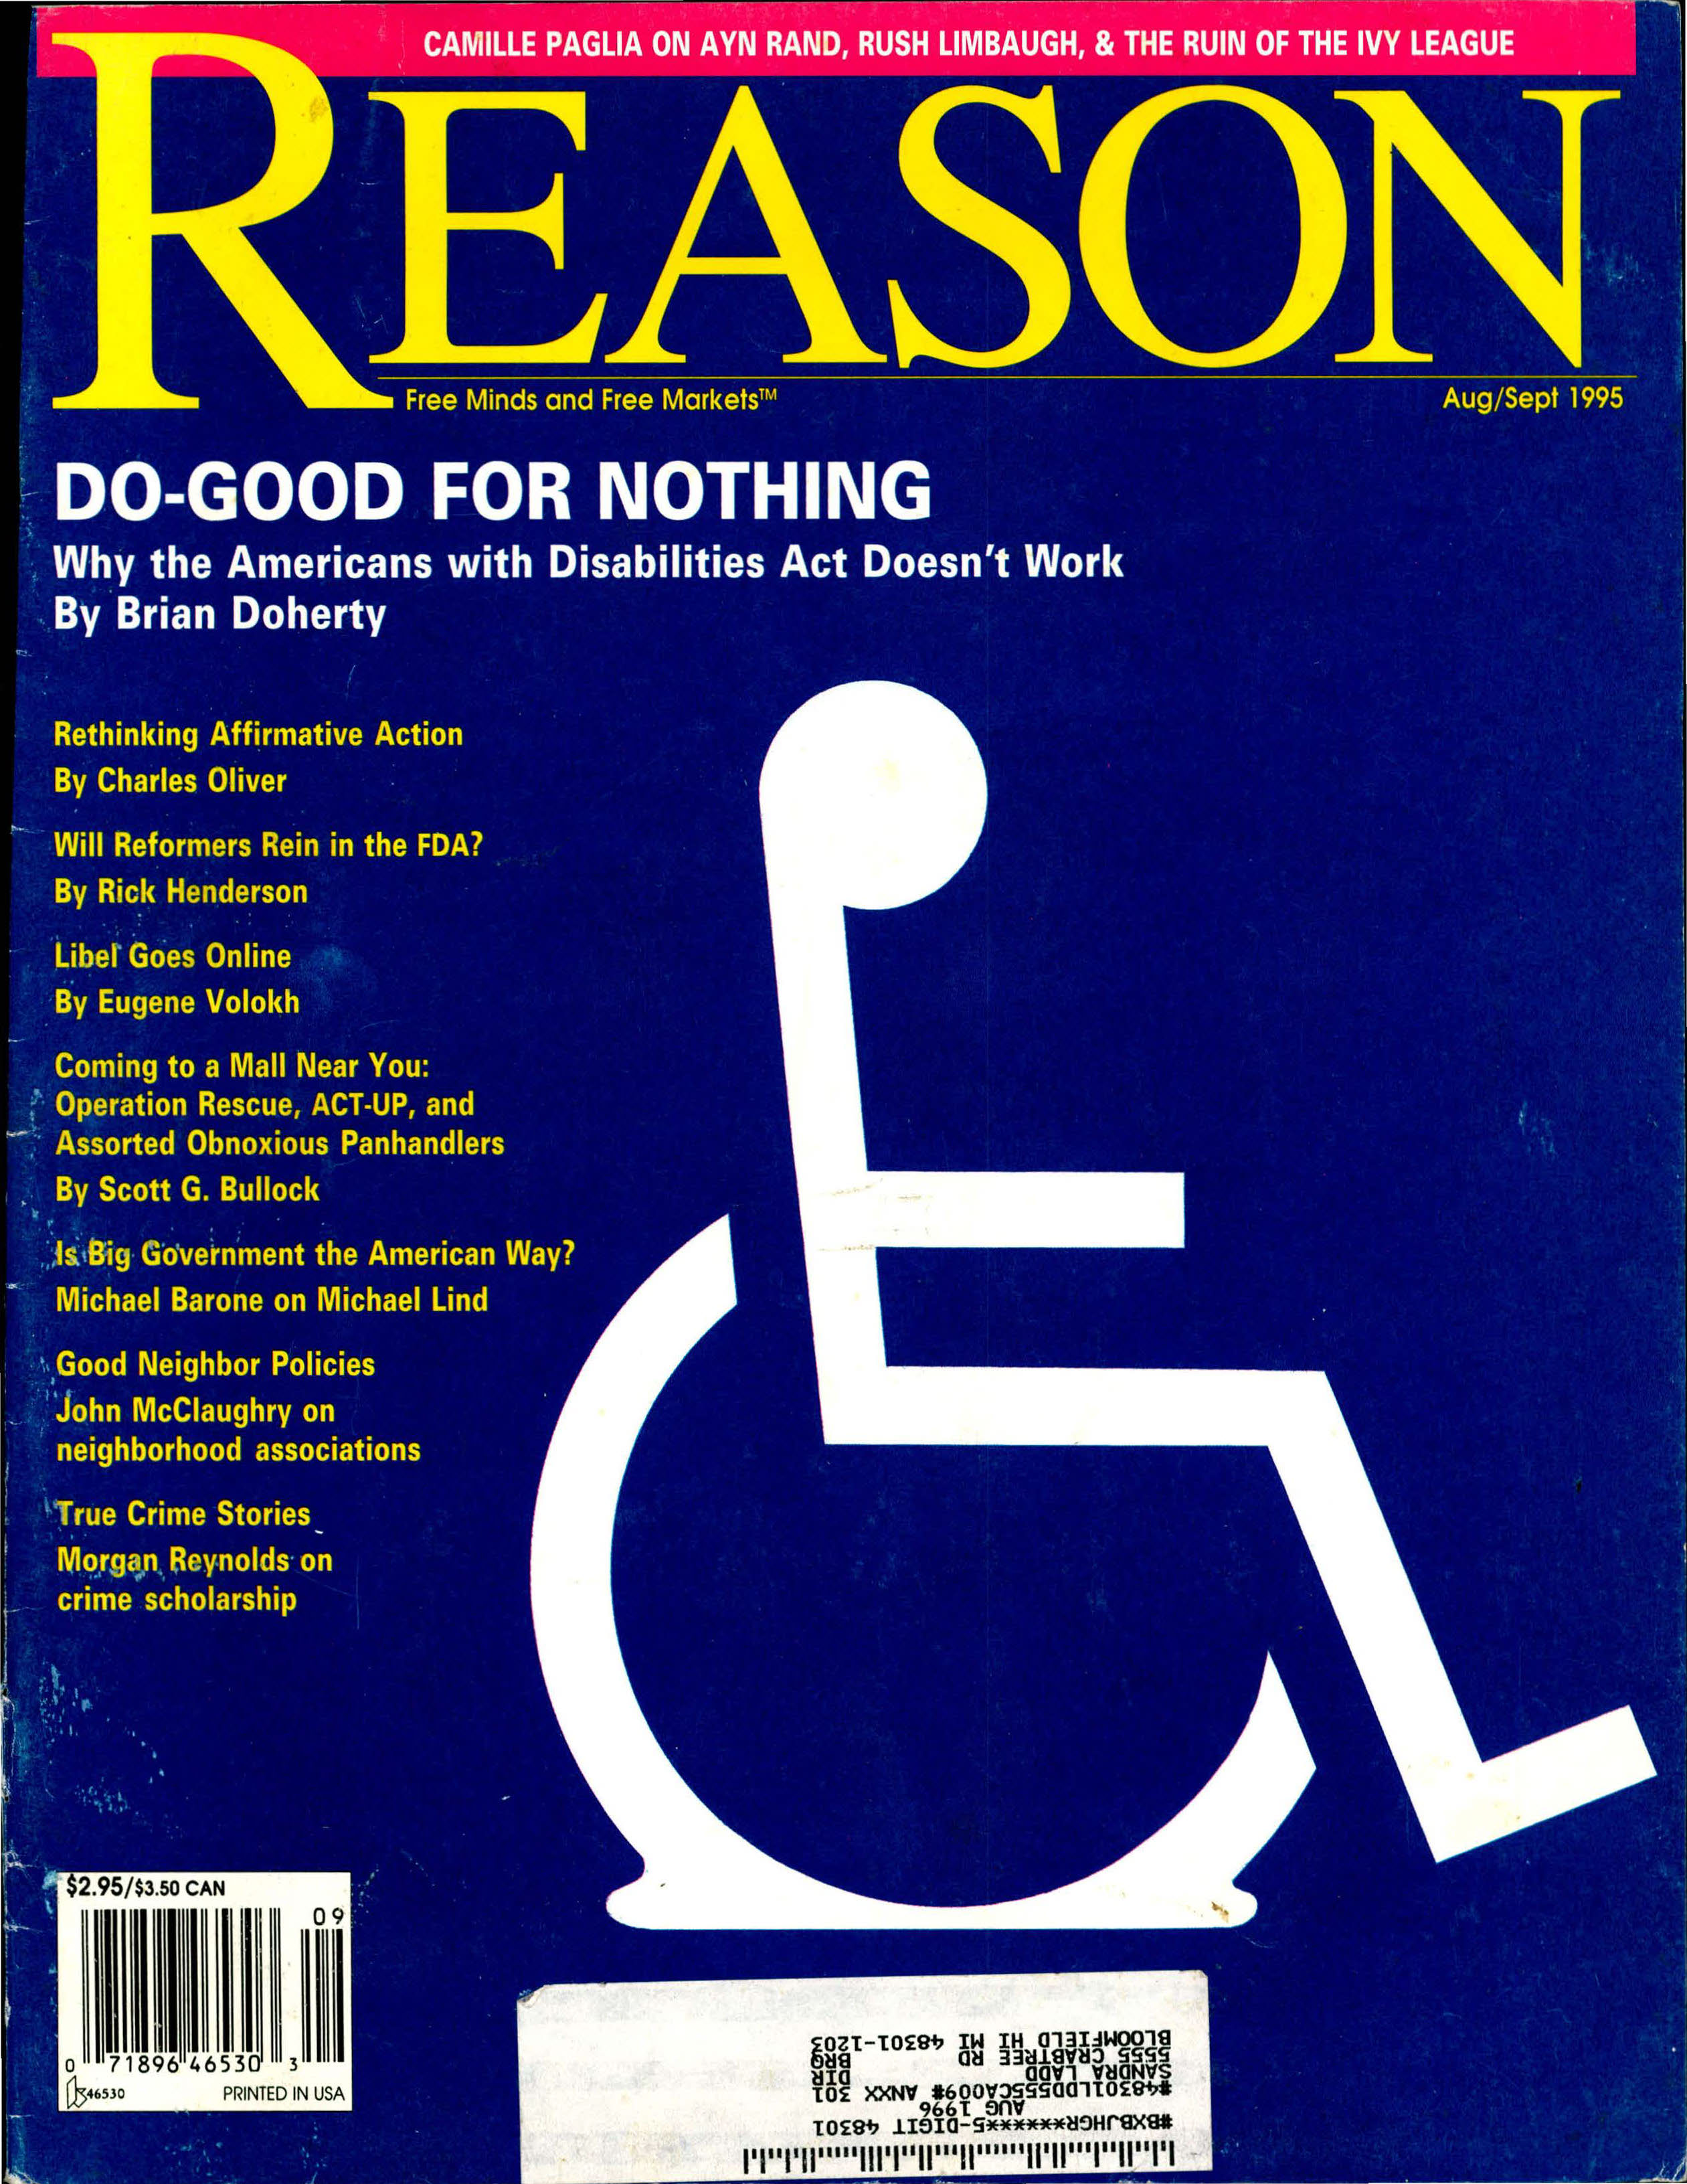 Reason Magazine, August/September 1995 cover image